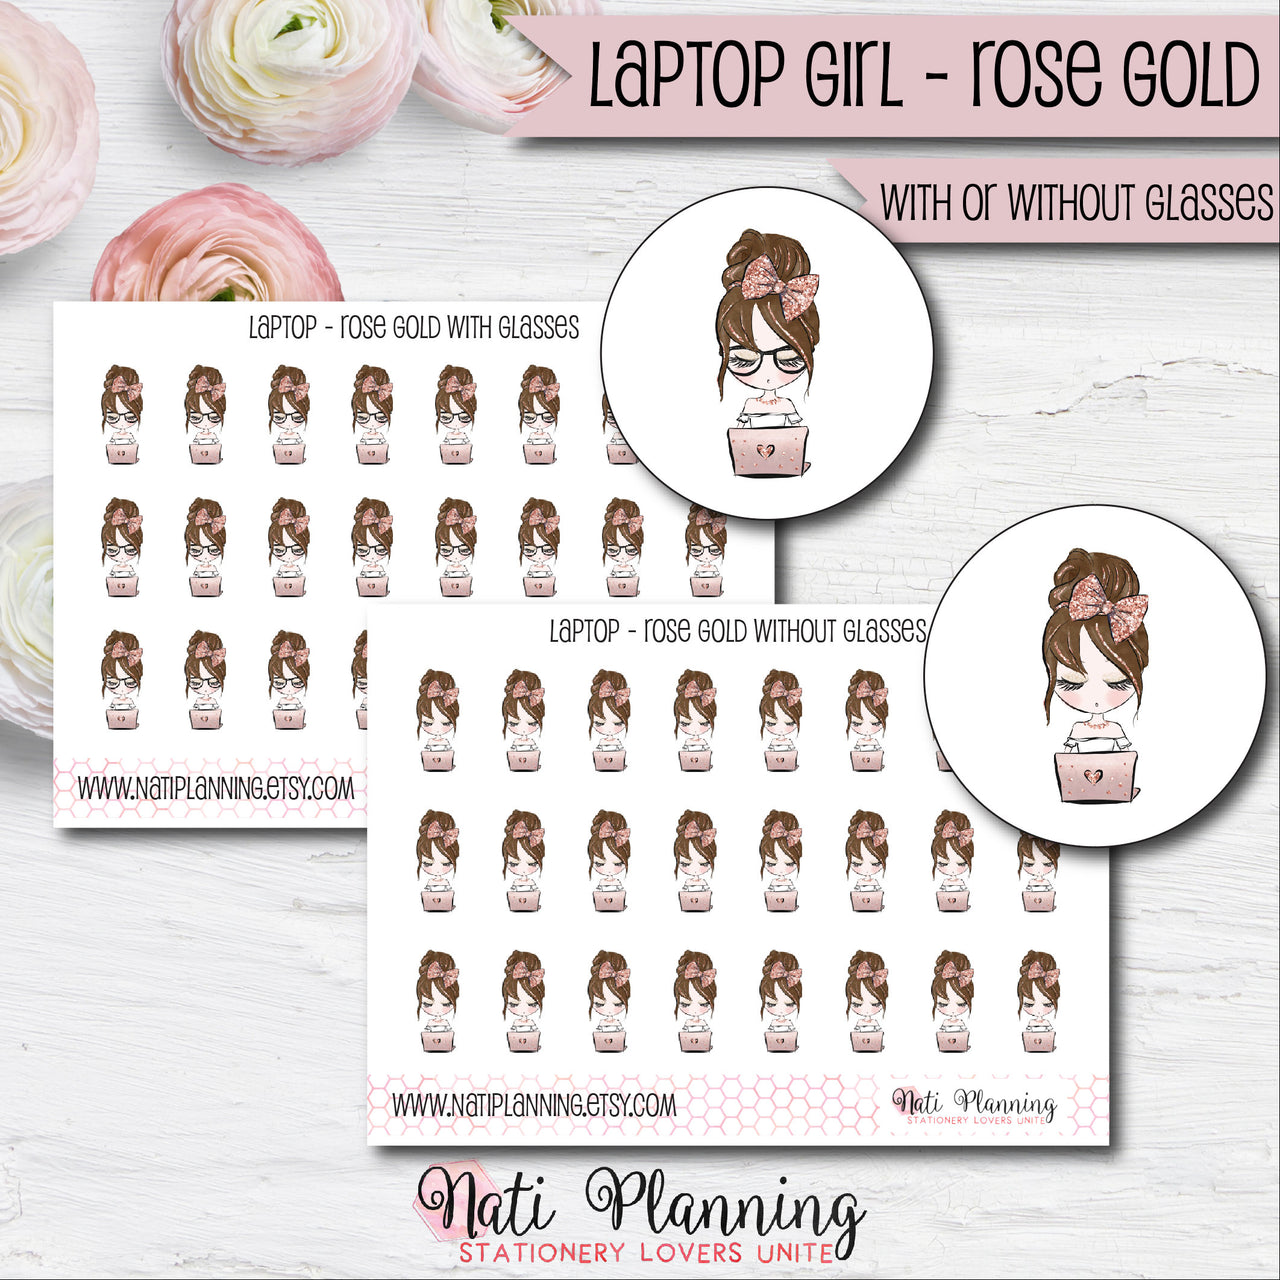 Laptop Girl - Rose Gold